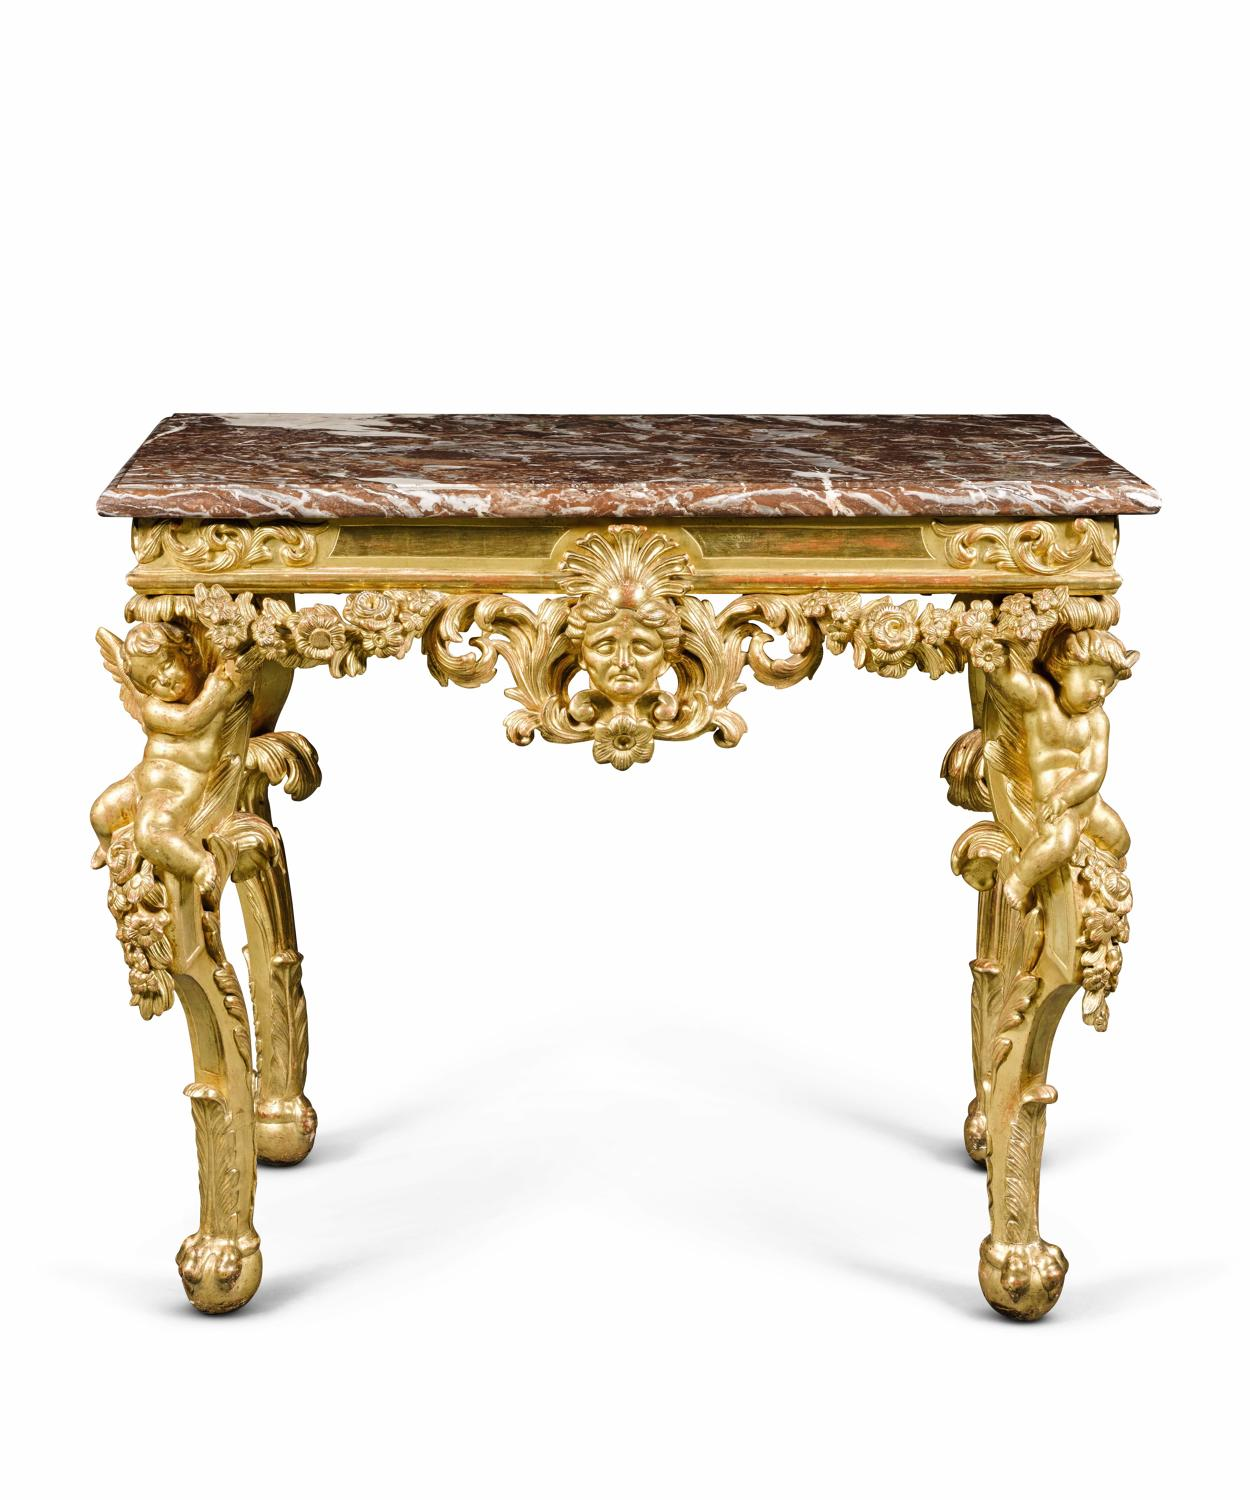 A Continental Giltwood Table,early 18TH Century